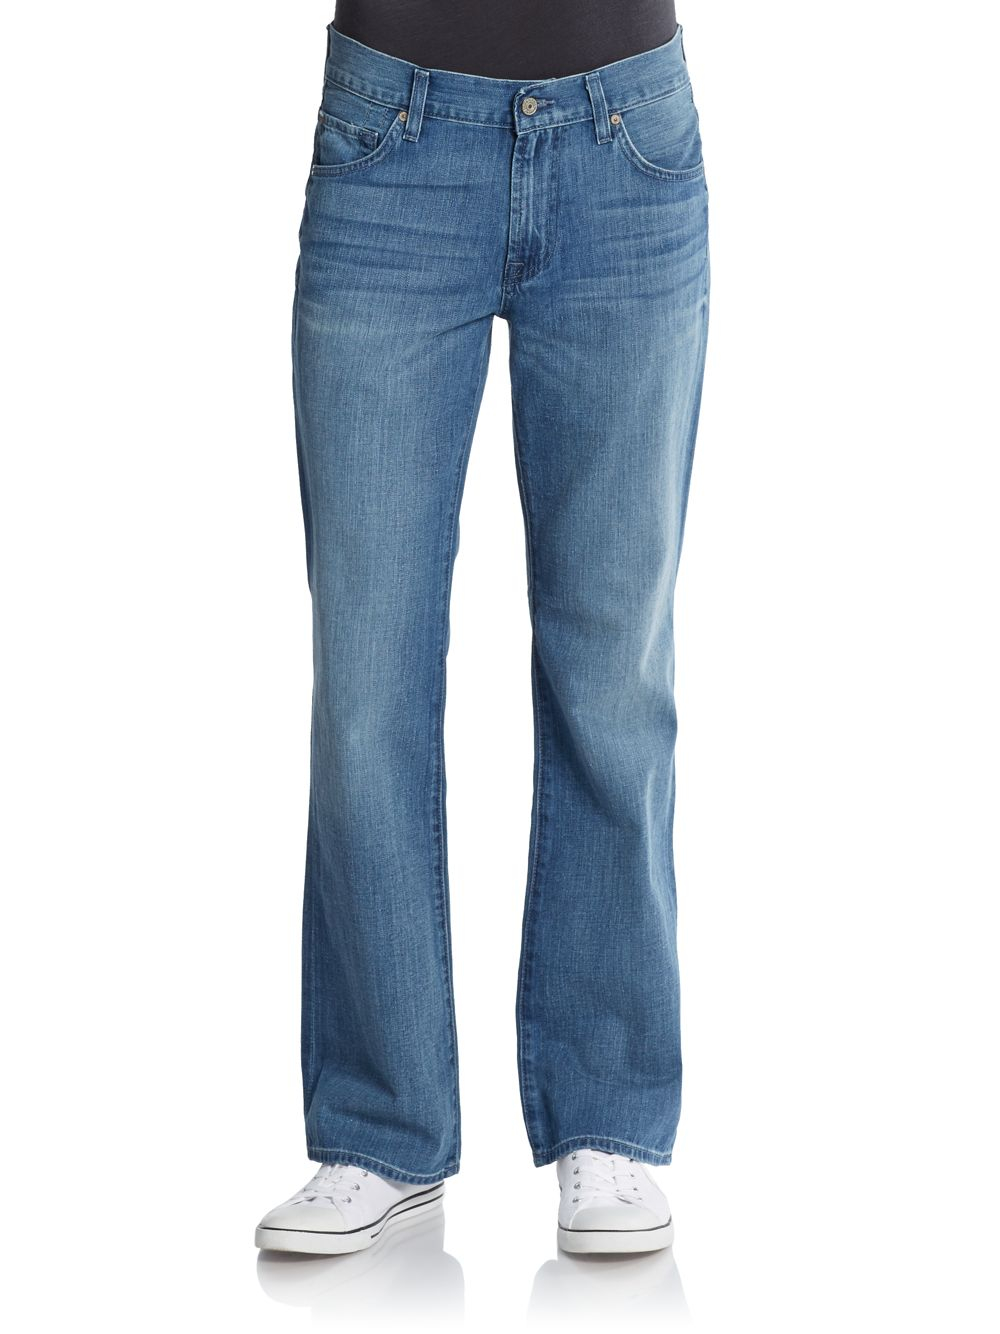 7 for all mankind apocket bootcut jeans in blue for men light blue lyst. Black Bedroom Furniture Sets. Home Design Ideas